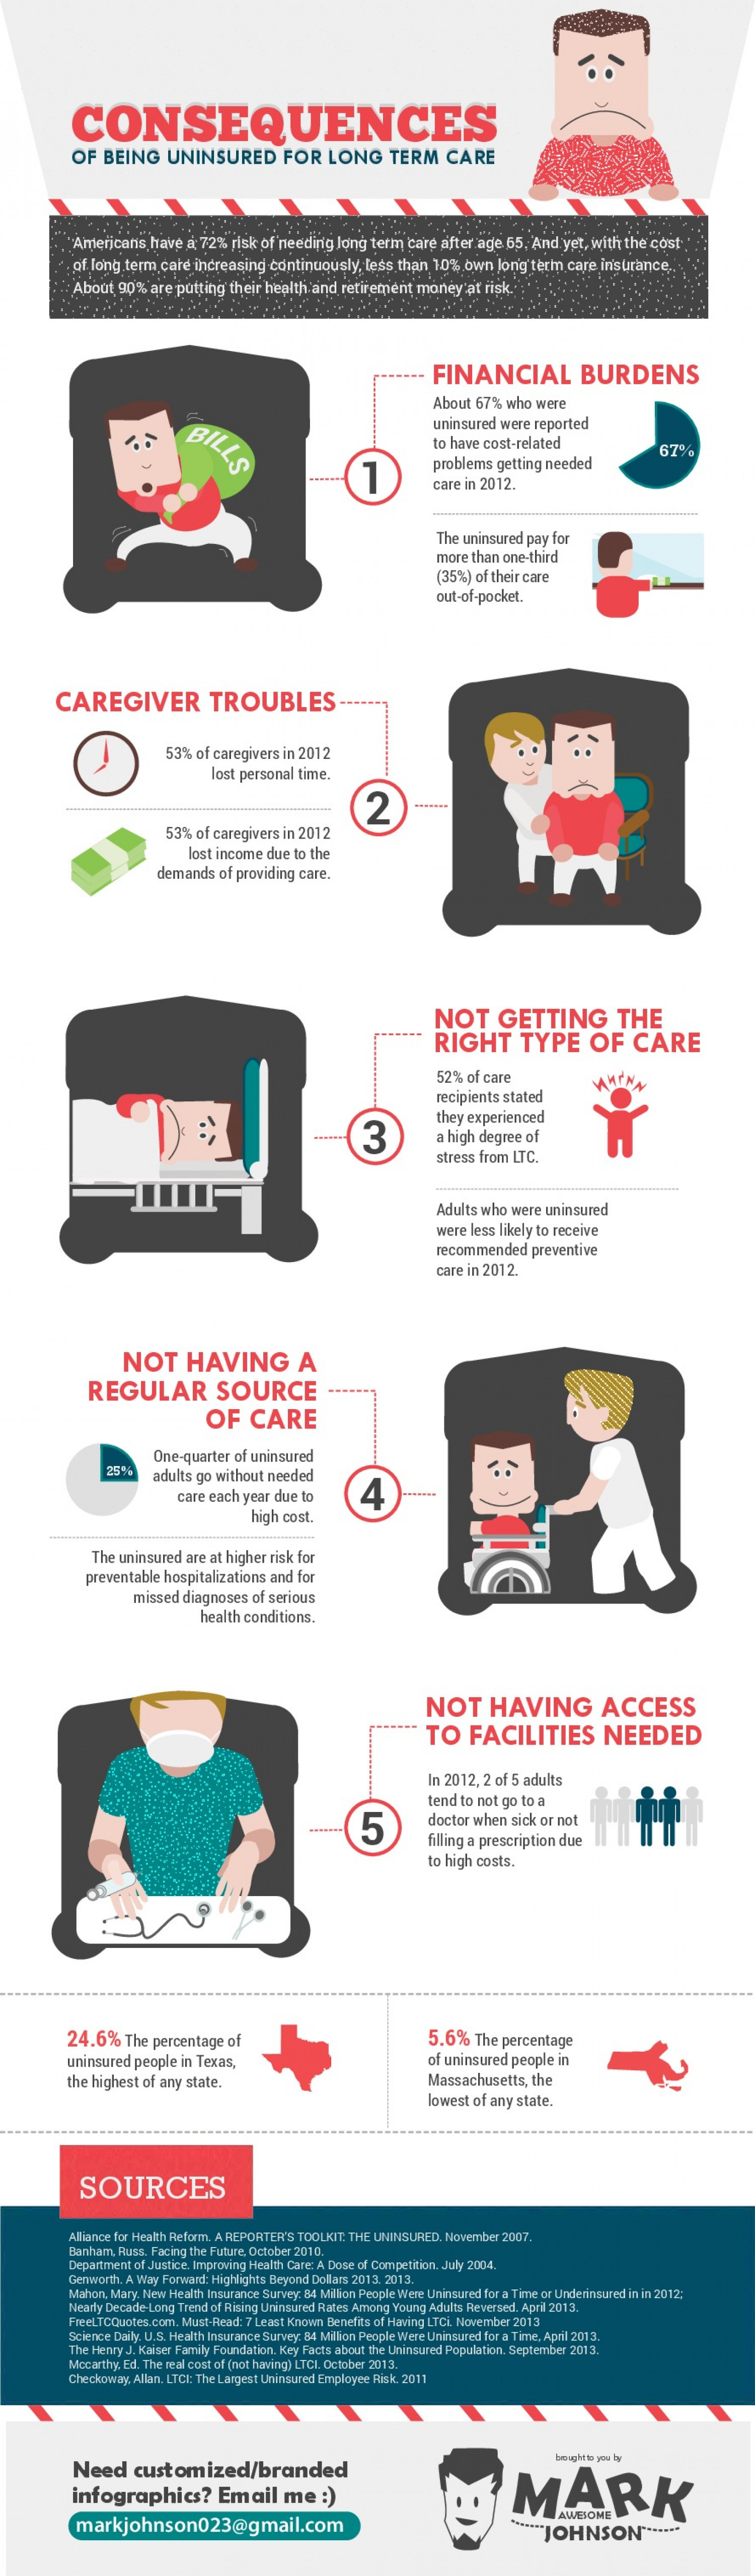 Consequences of Being Uninsured for Long Term Care Infographic